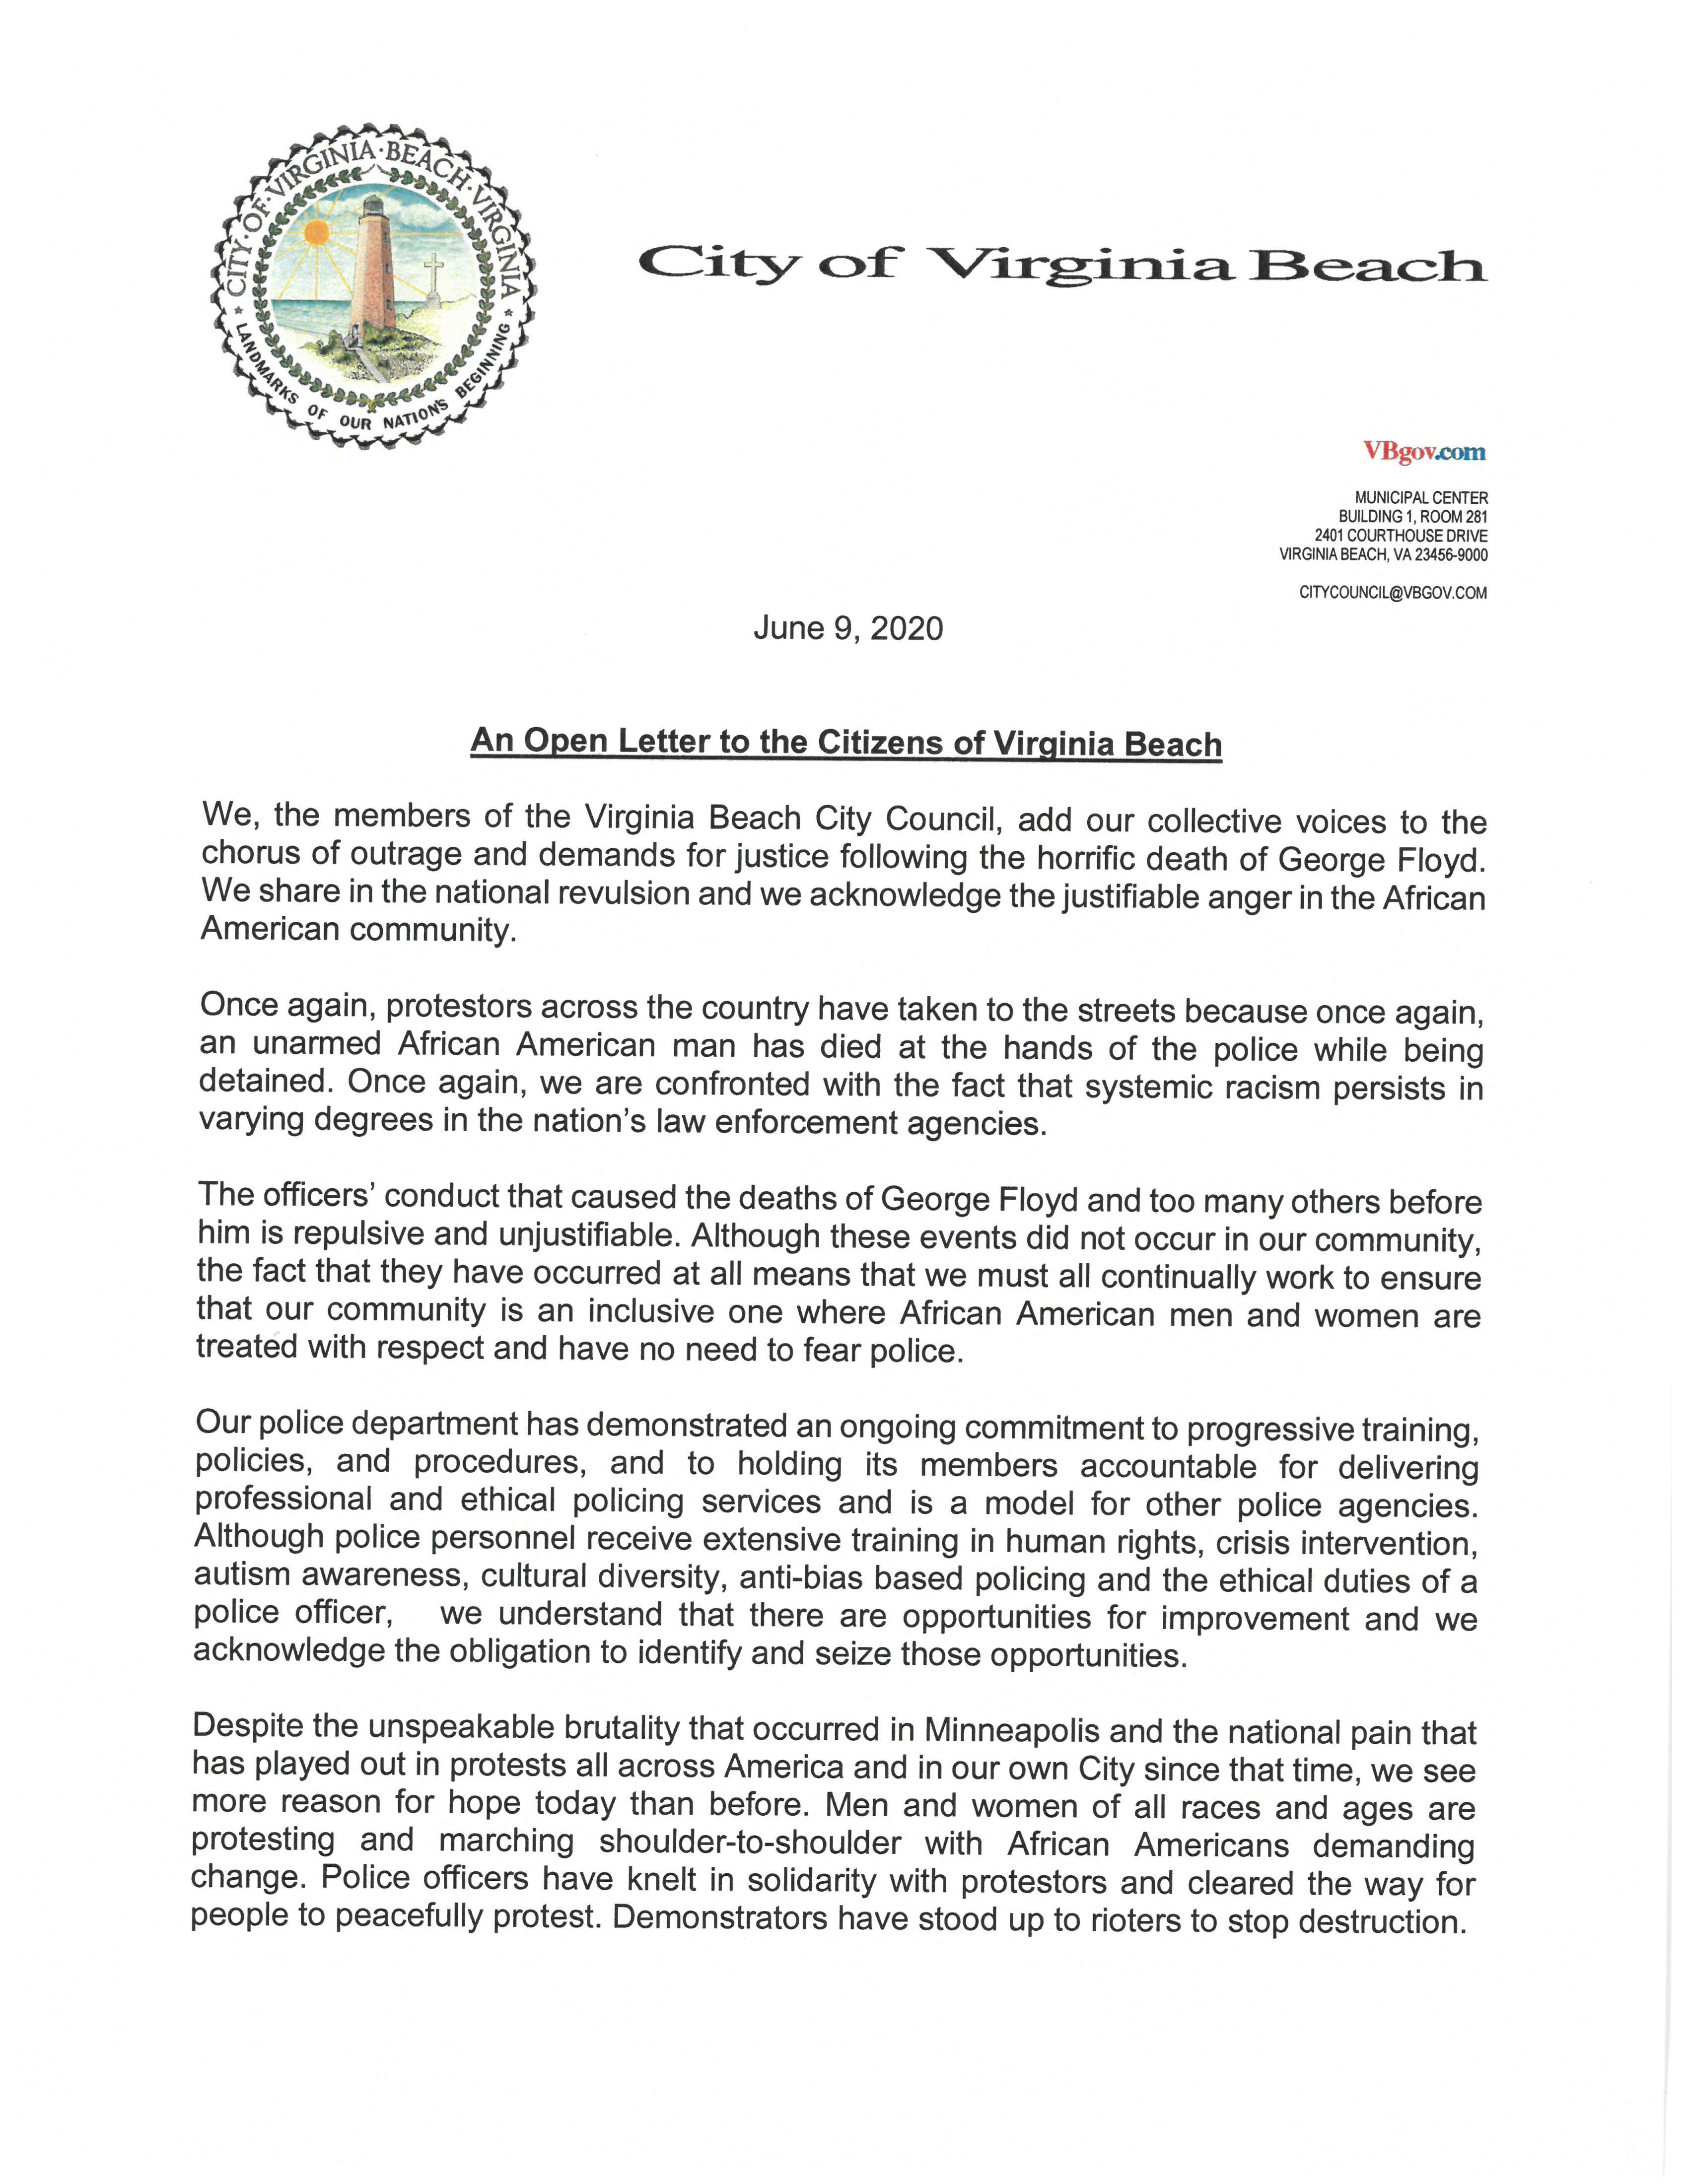 Open Letter to Citizens 06092020_Page_1.png